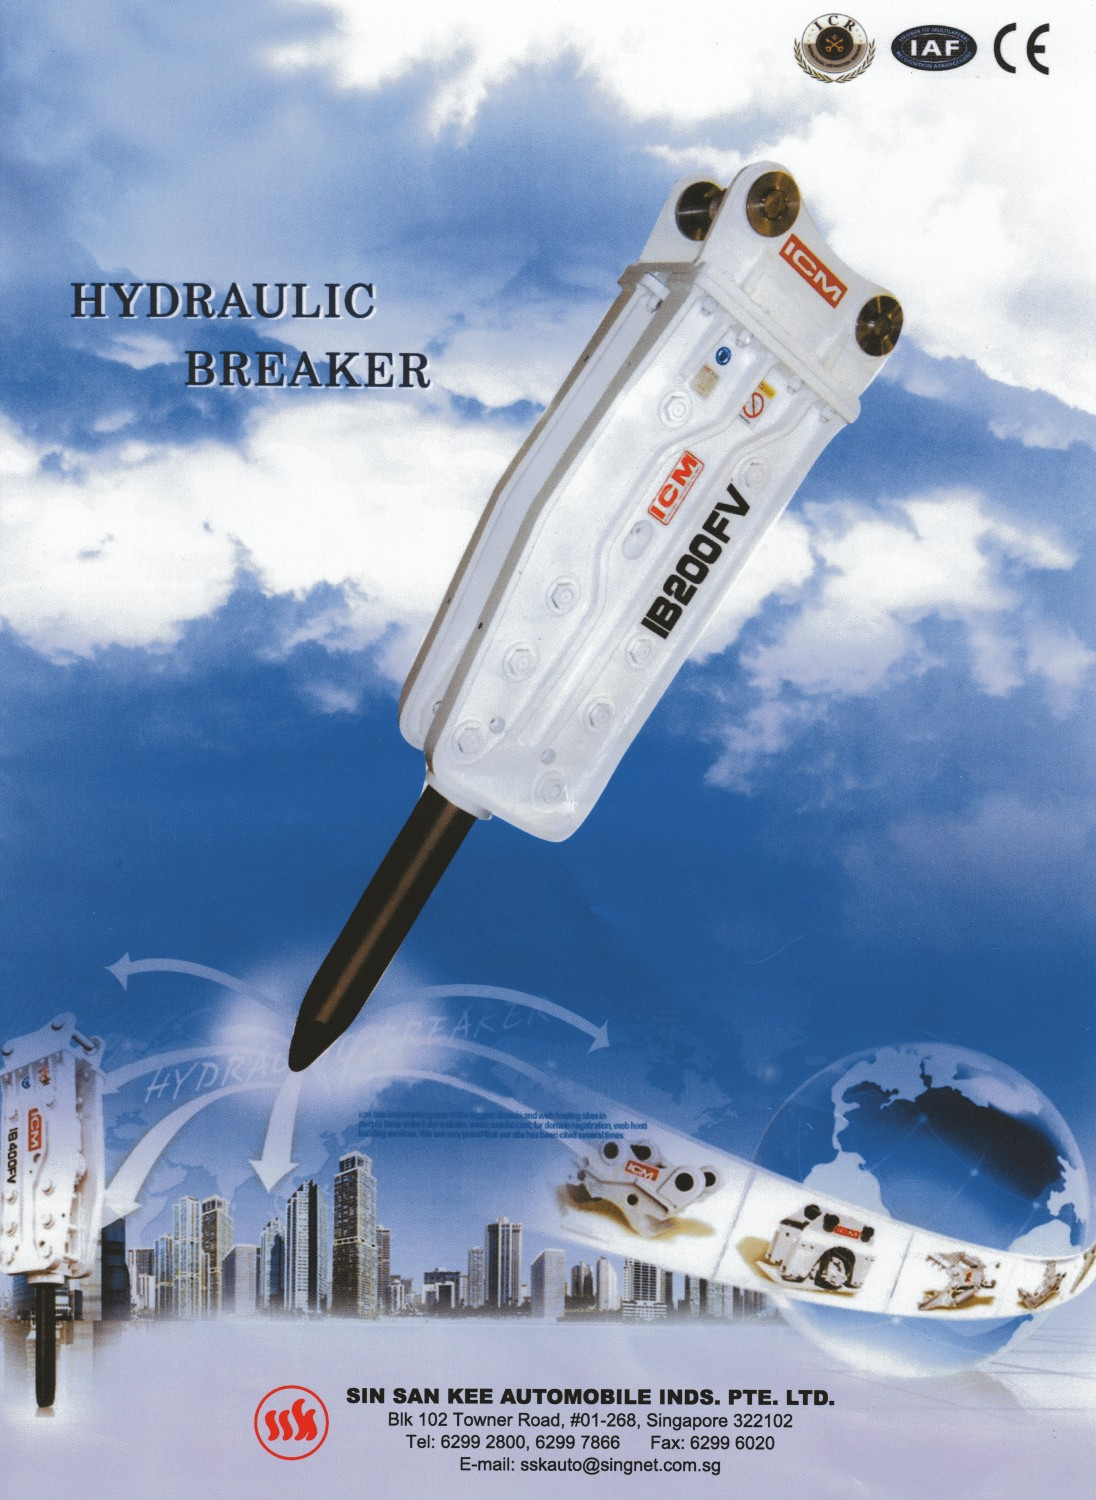 Hydraulic Breaker Catalogue